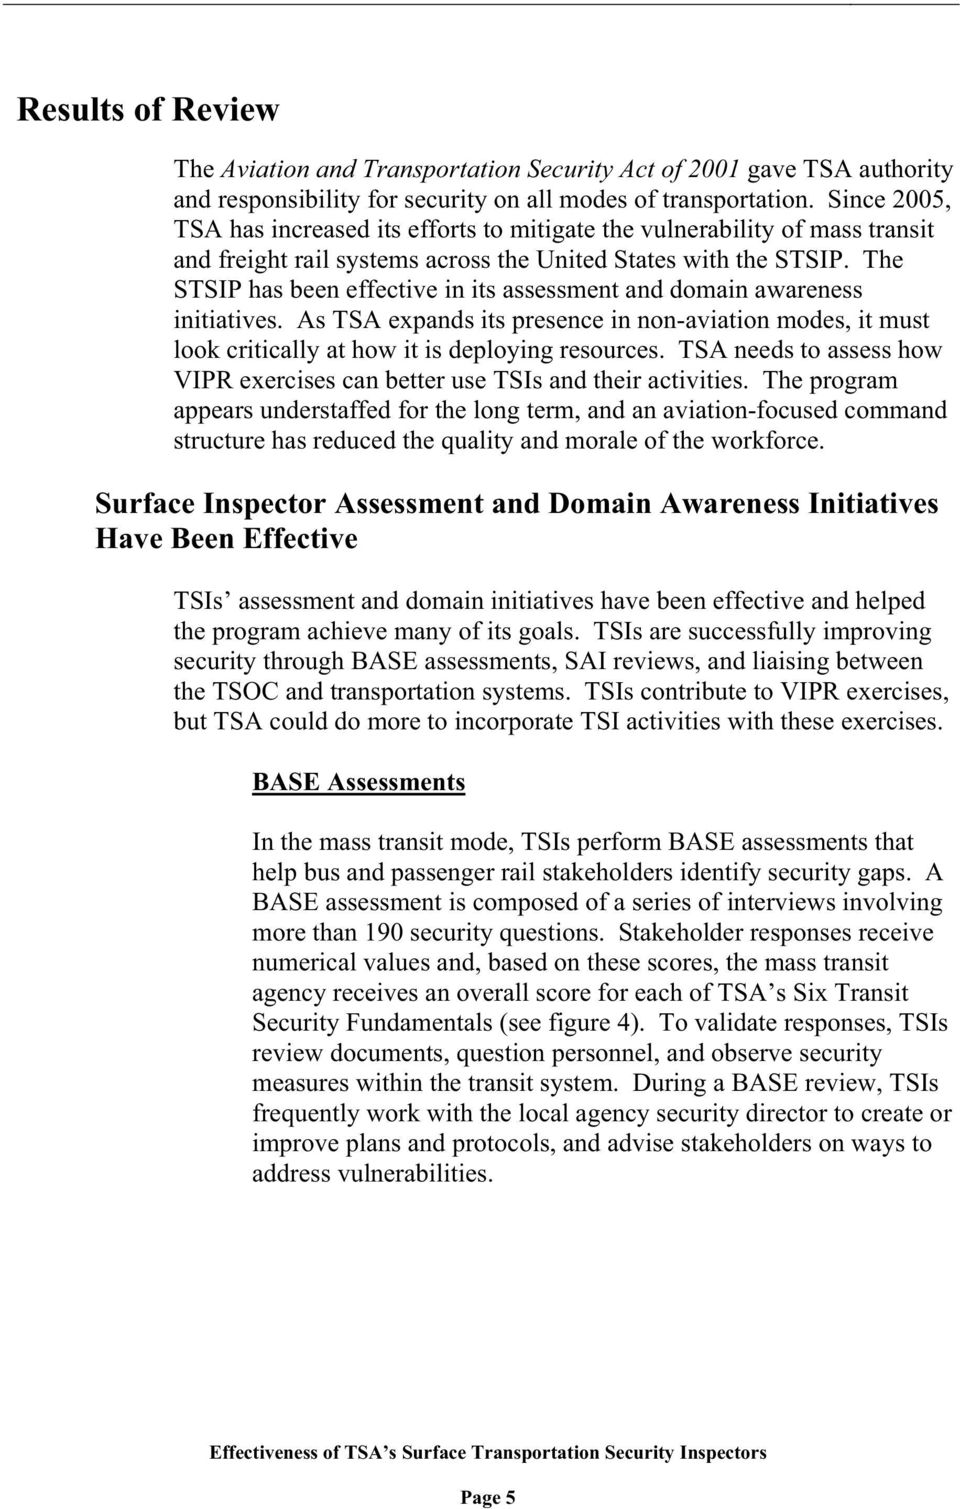 The STSIP has been effective in its assessment and domain awareness initiatives. As TSA expands its presence in non-aviation modes, it must look critically at how it is deploying resources.